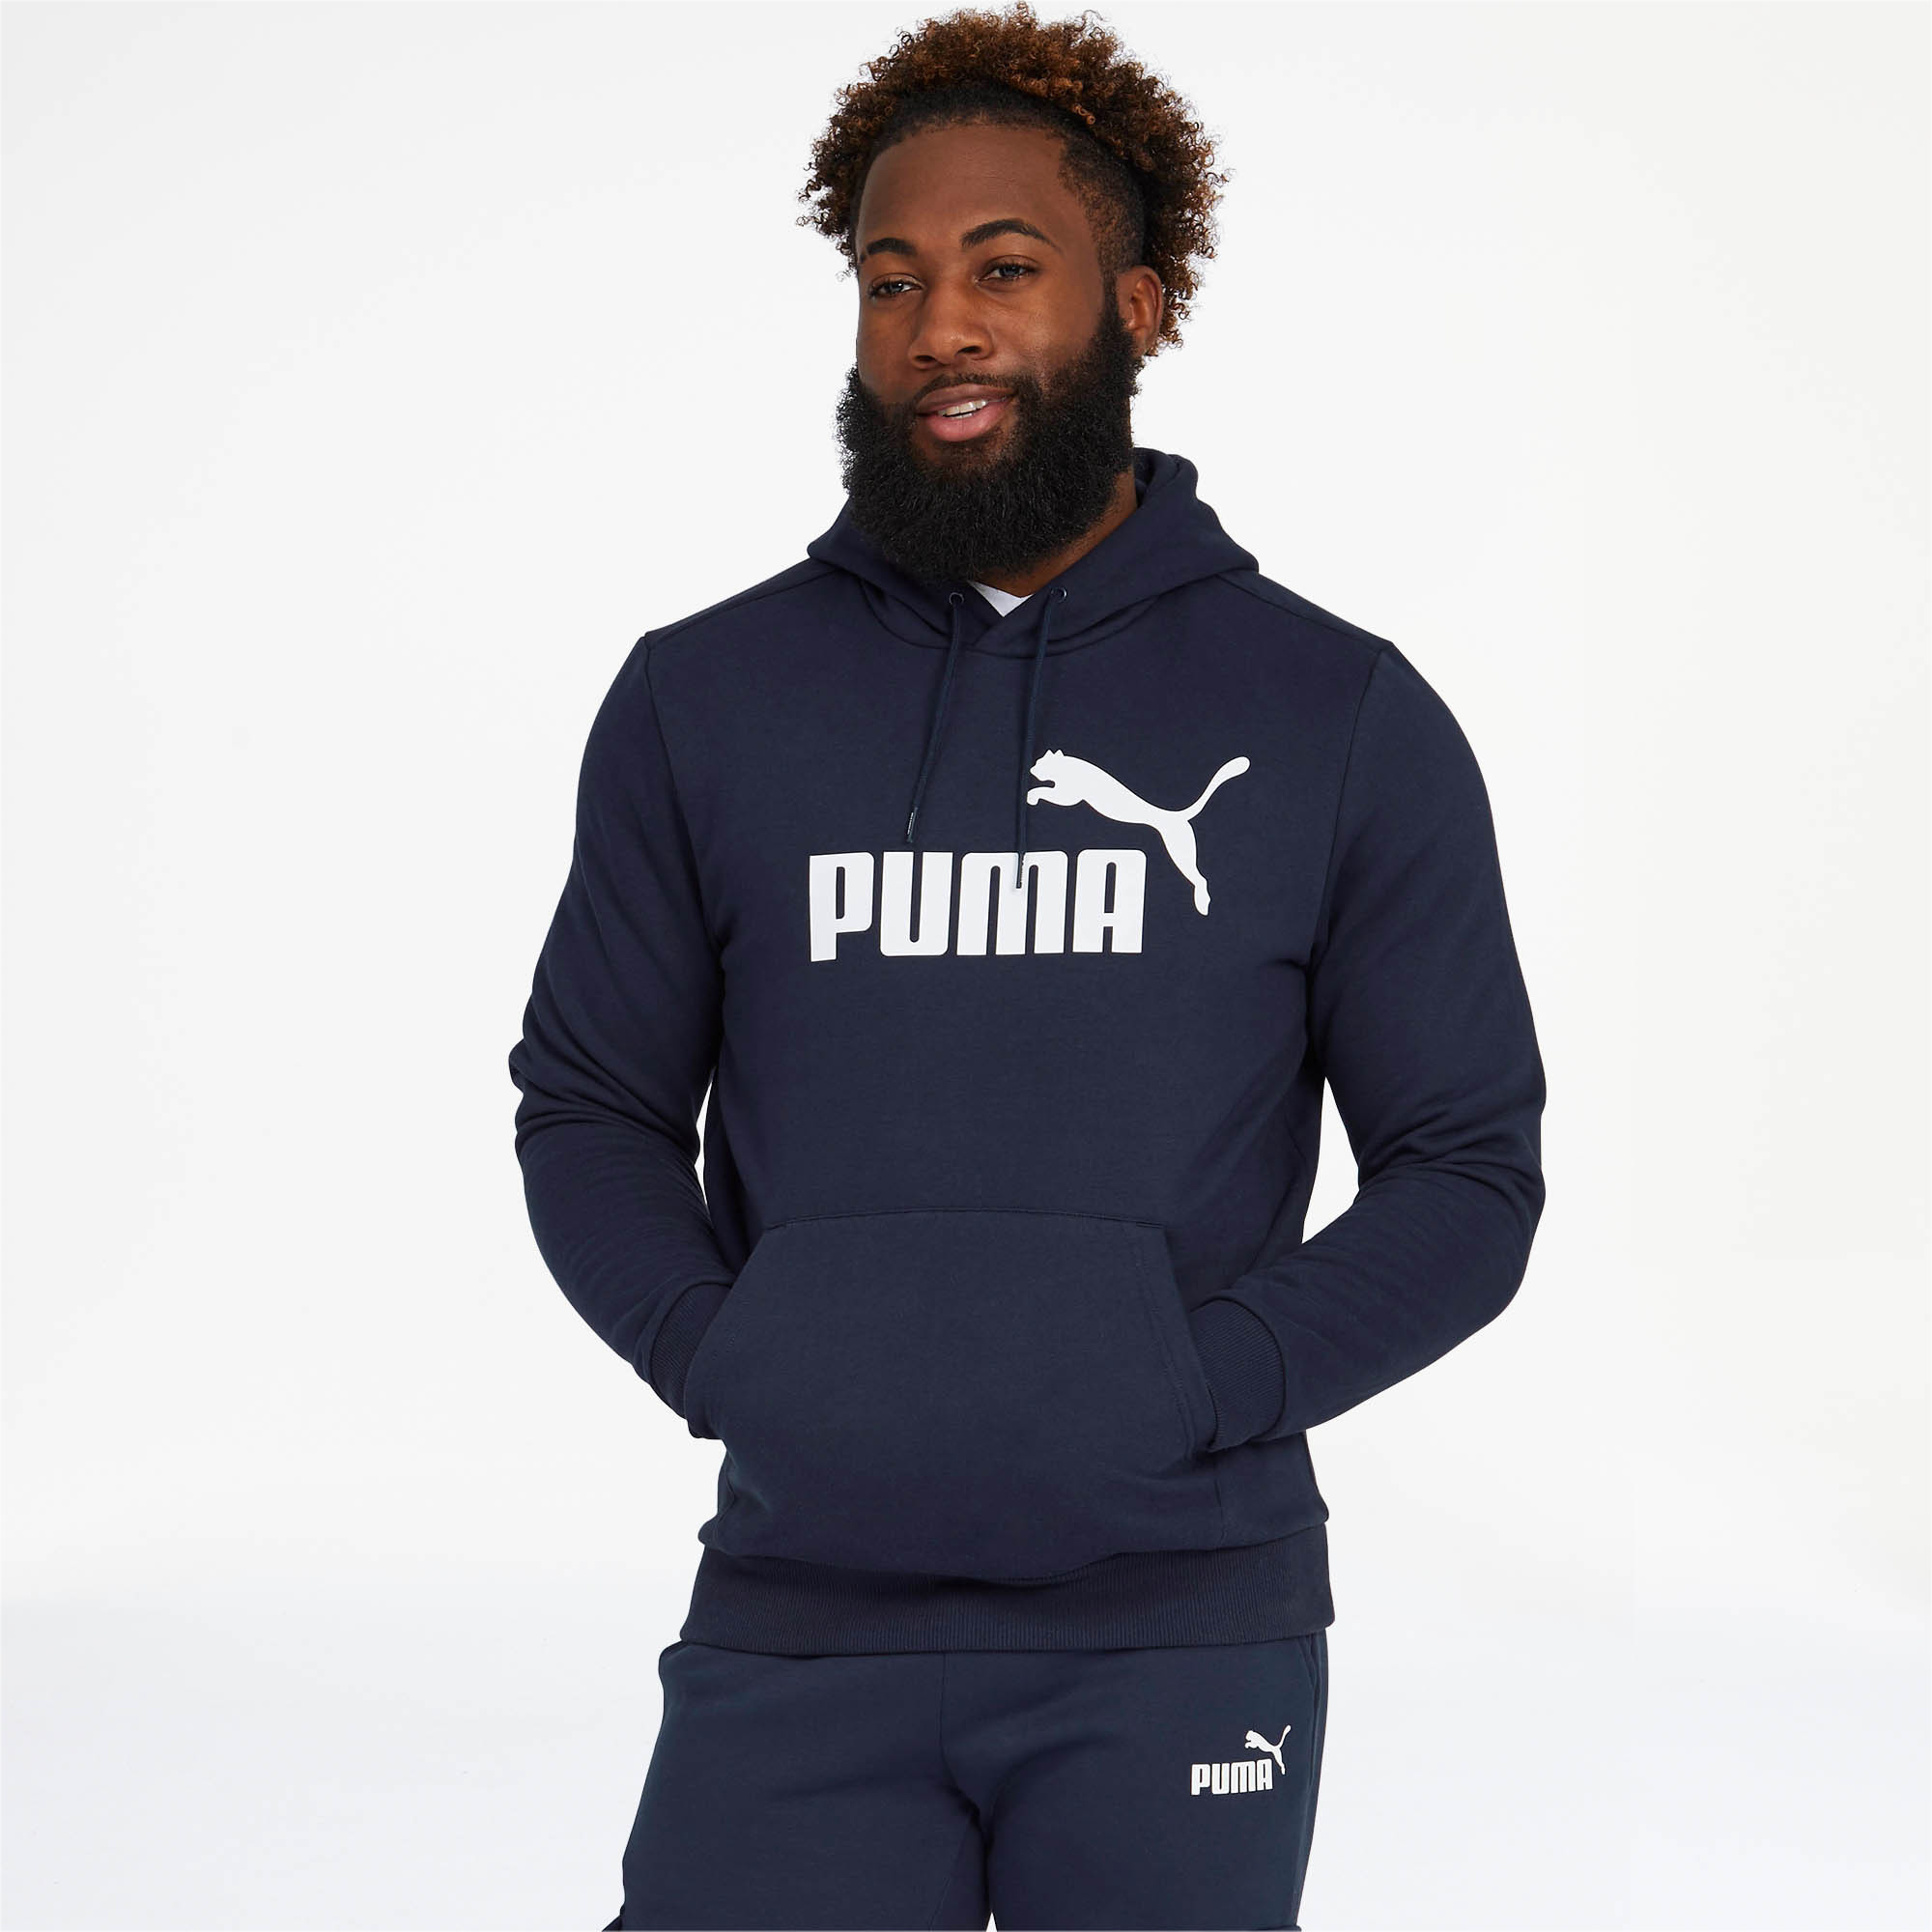 PUMA-Essentials-Men-039-s-Fleece-Hoodie-Men-Sweat-Basics thumbnail 16